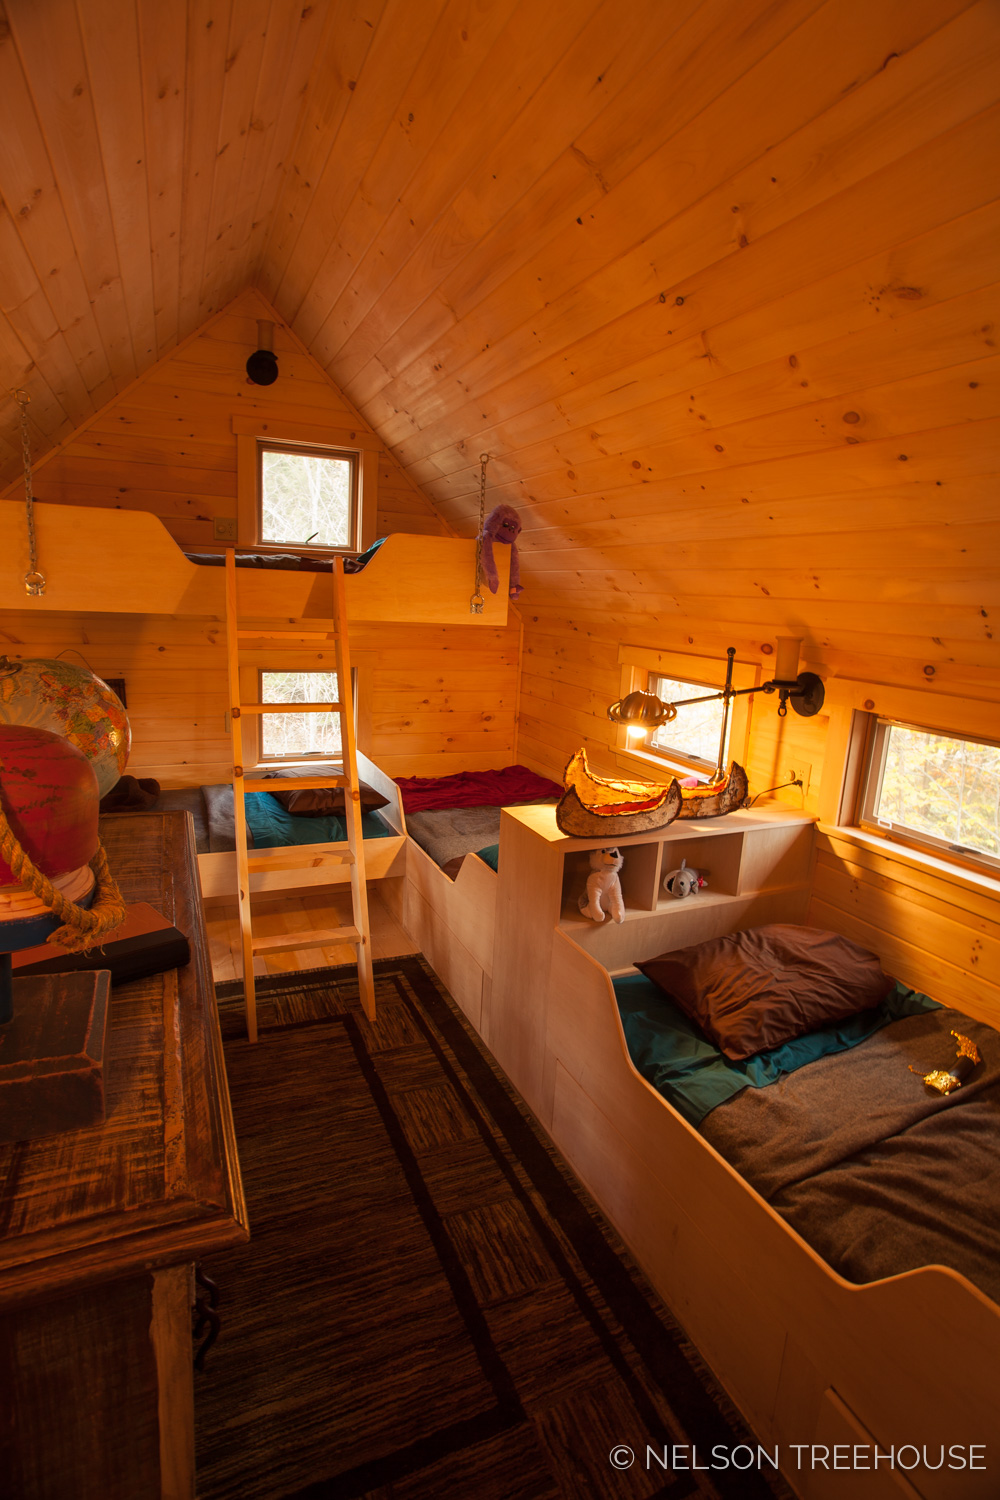 Nelson Treehouse - Adventure TEmple Bunk loft